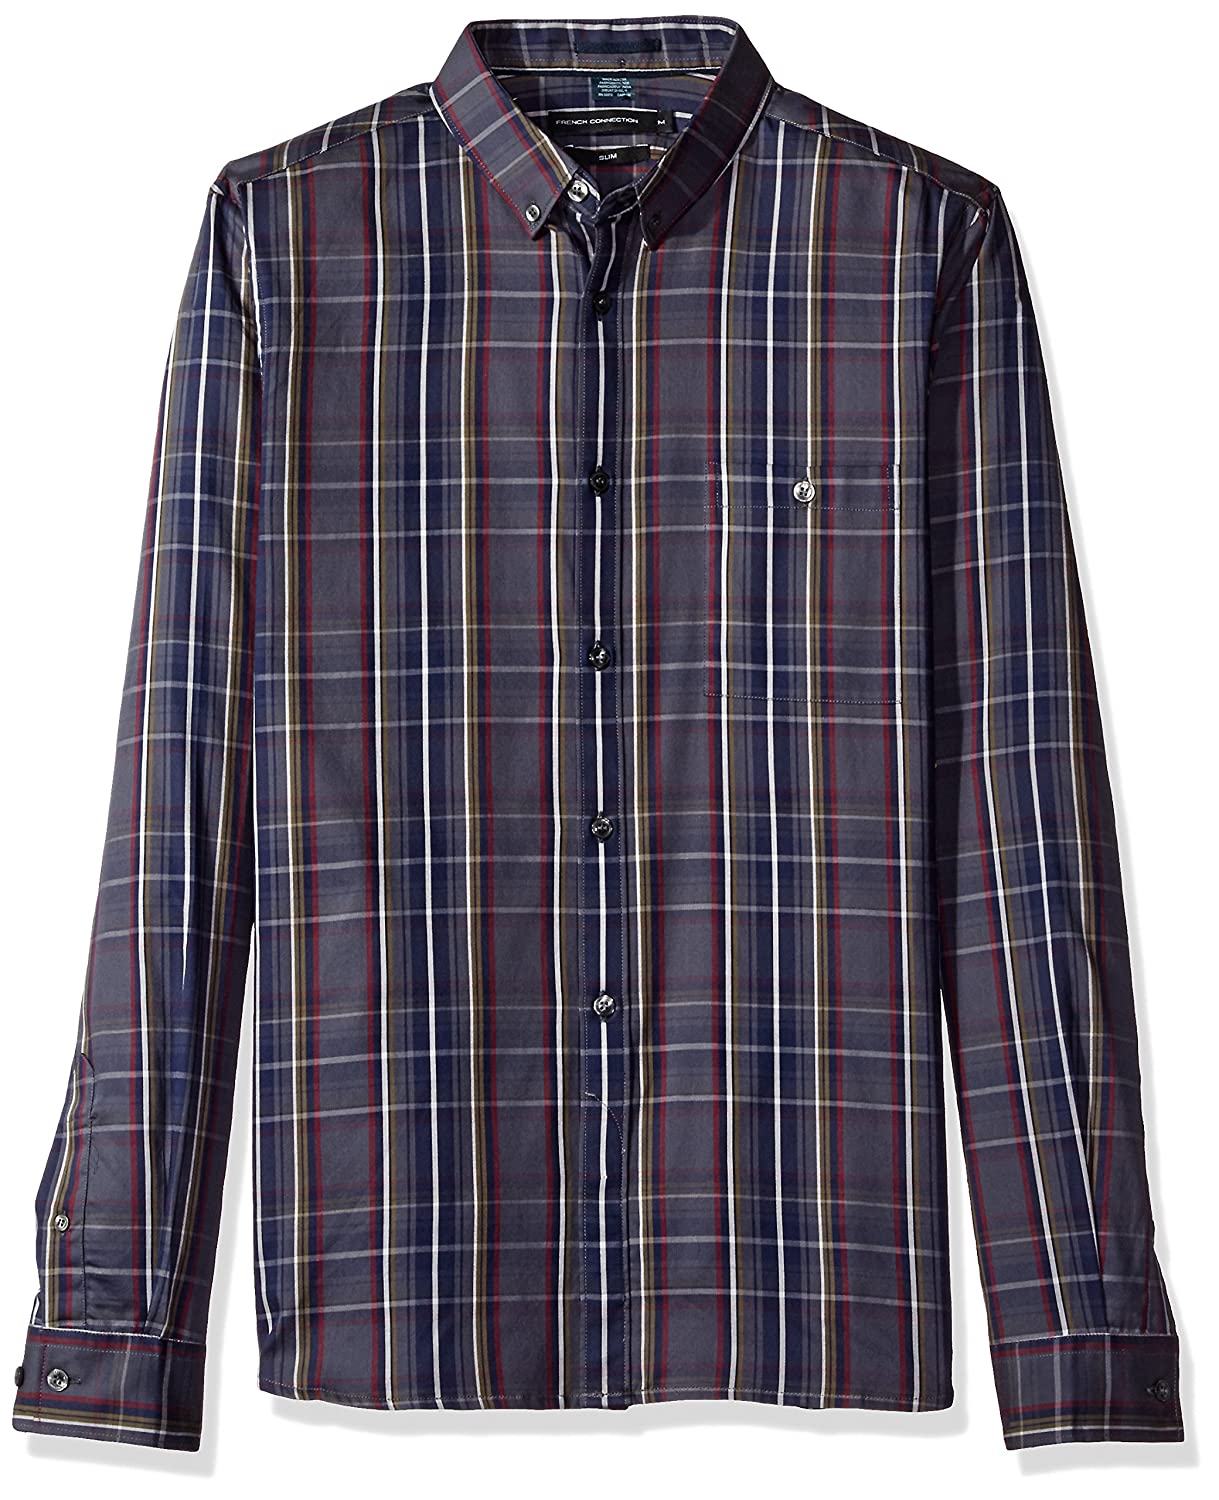 French Connection Mens Lifeline Tartan